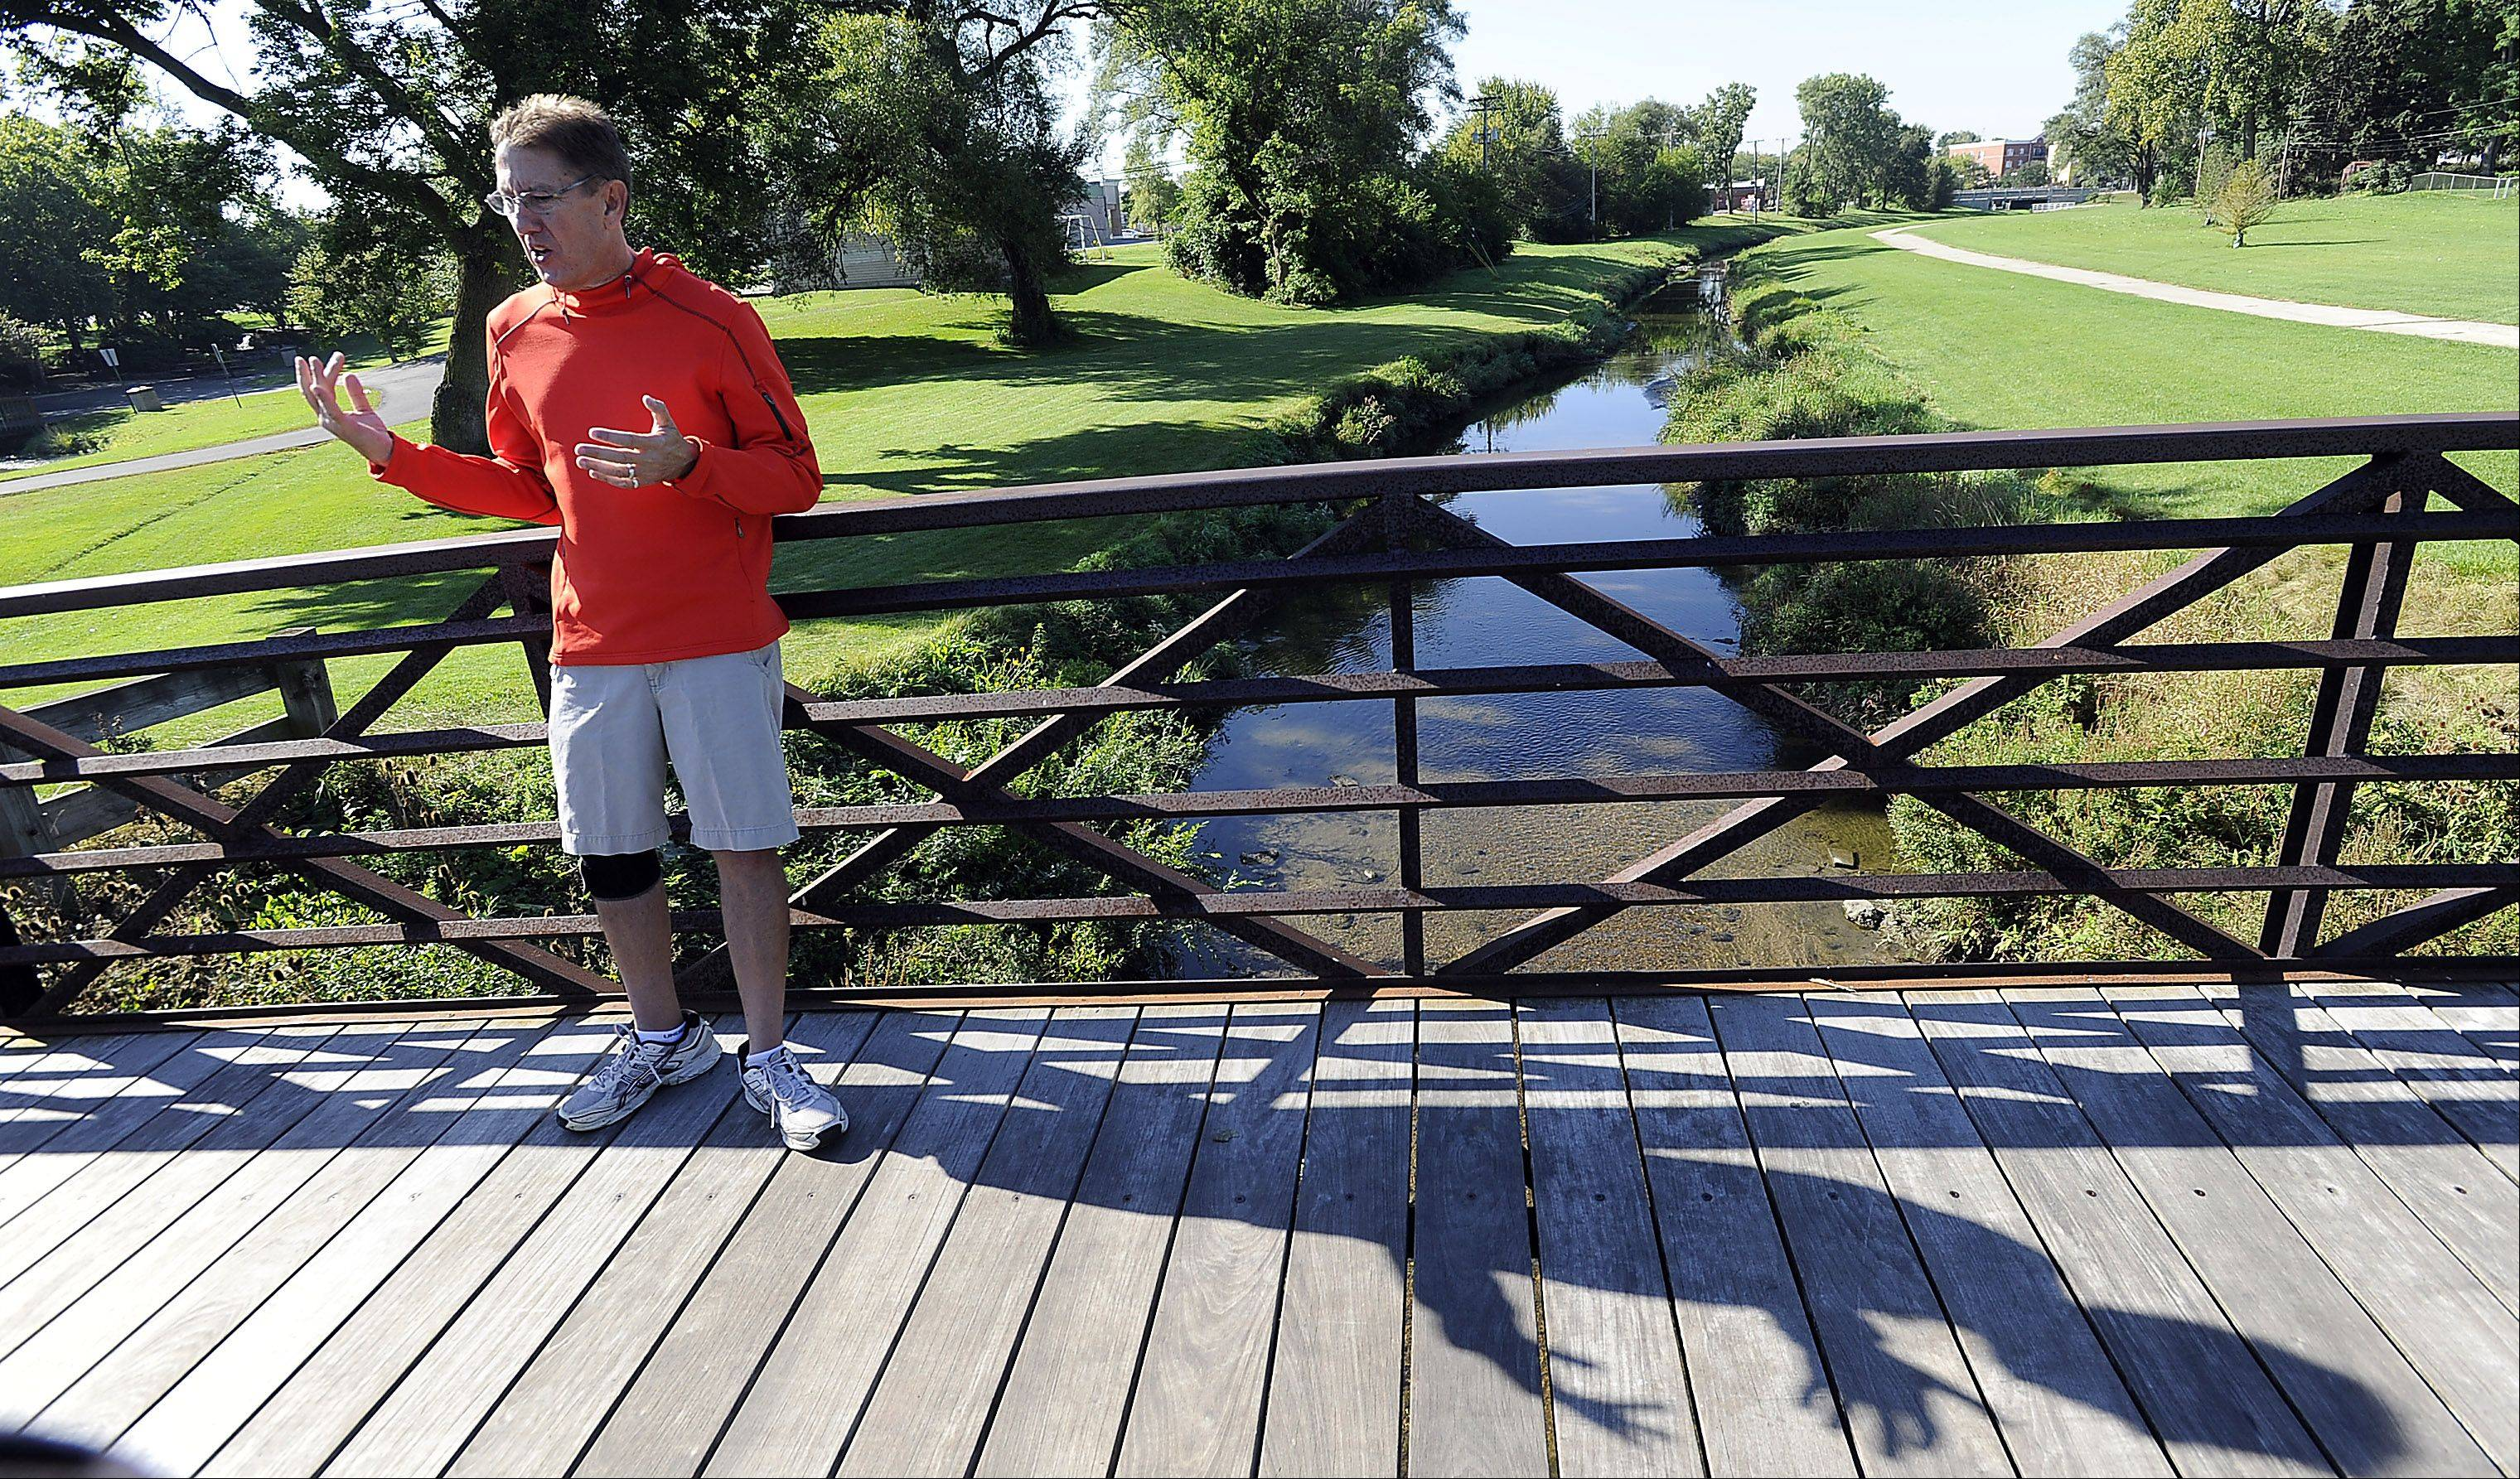 The Parkinson's tremors that begin on his left side can leave David Slania of Rolling Meadows sore and exhausted. But he still coaches his son's sports teams and says he focuses on what he can do.